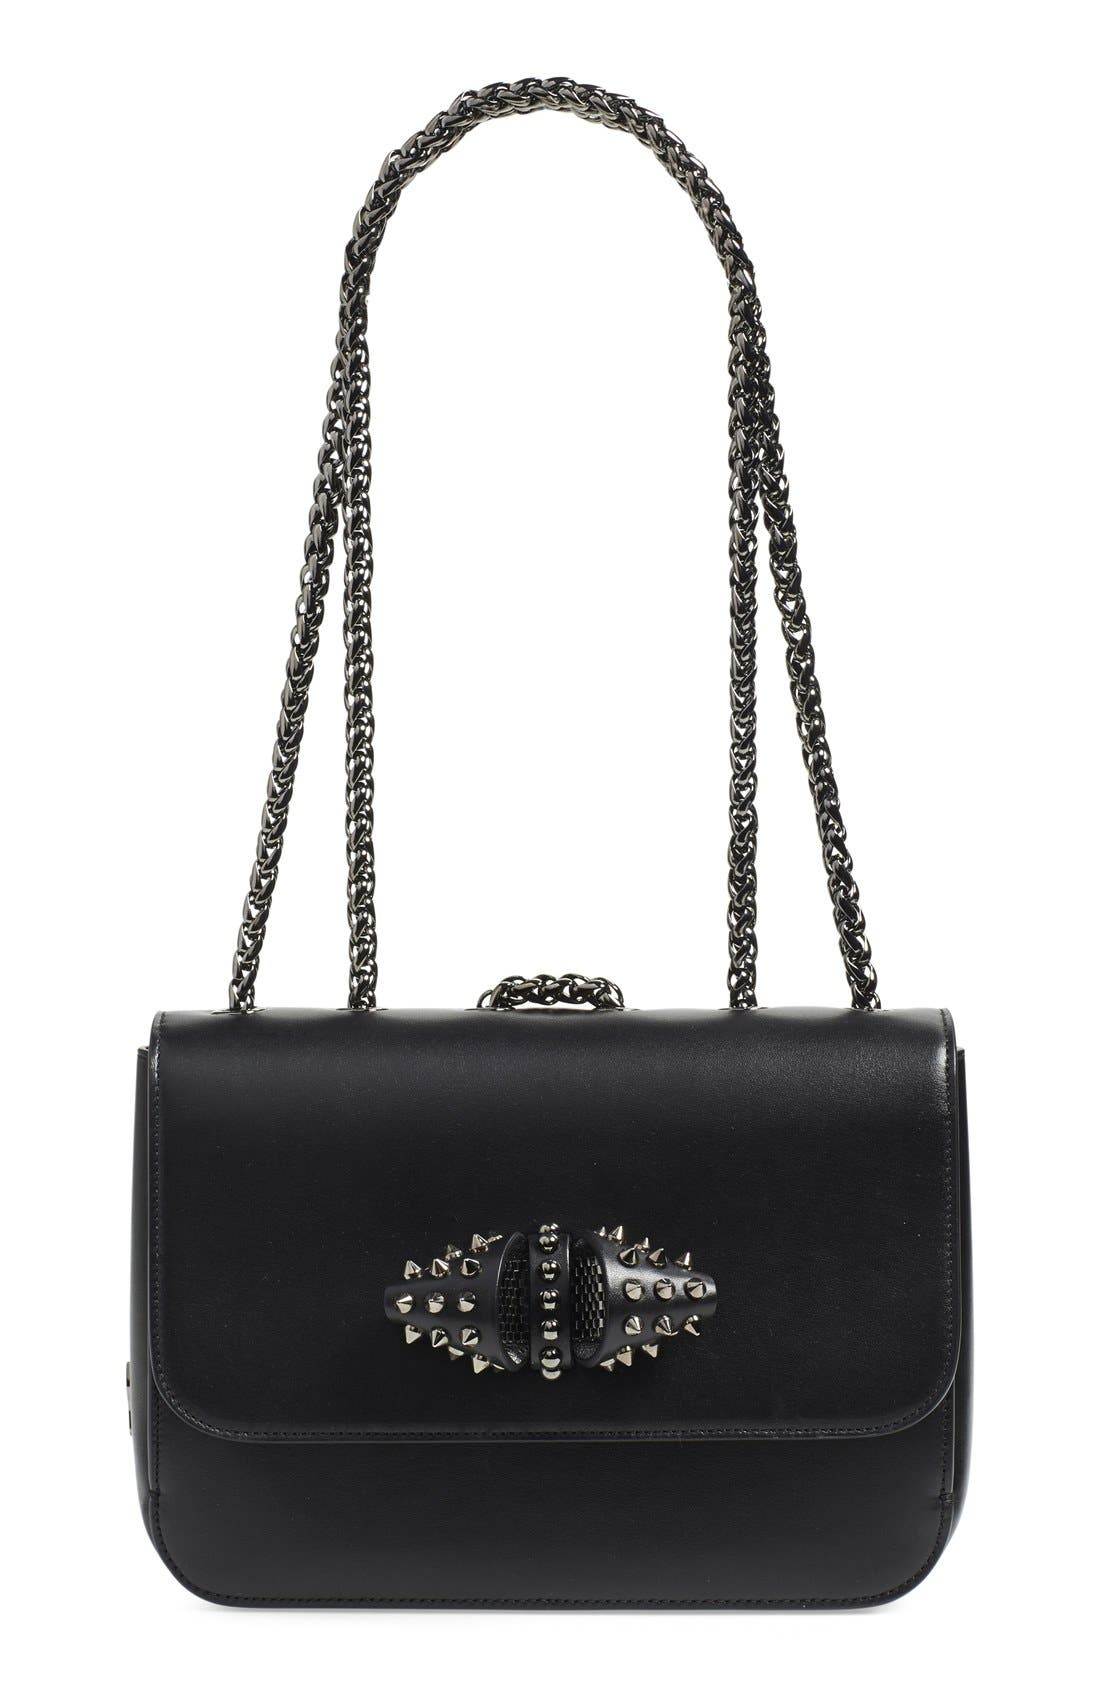 Alternate Image 1 Selected - Christian Louboutin 'Small Sweet Charity' Spiked Bow Flap Shoulder Bag